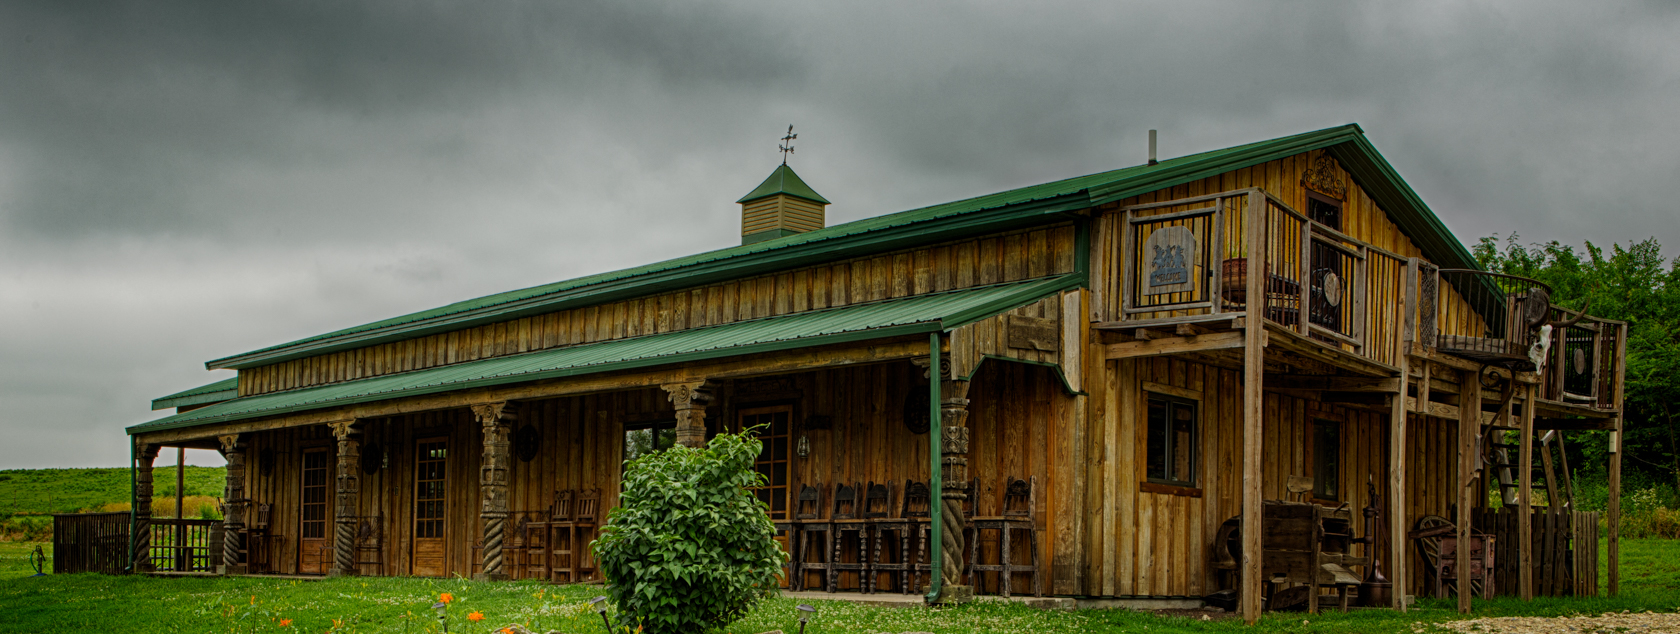 The Lodge at the Flying W Ranch